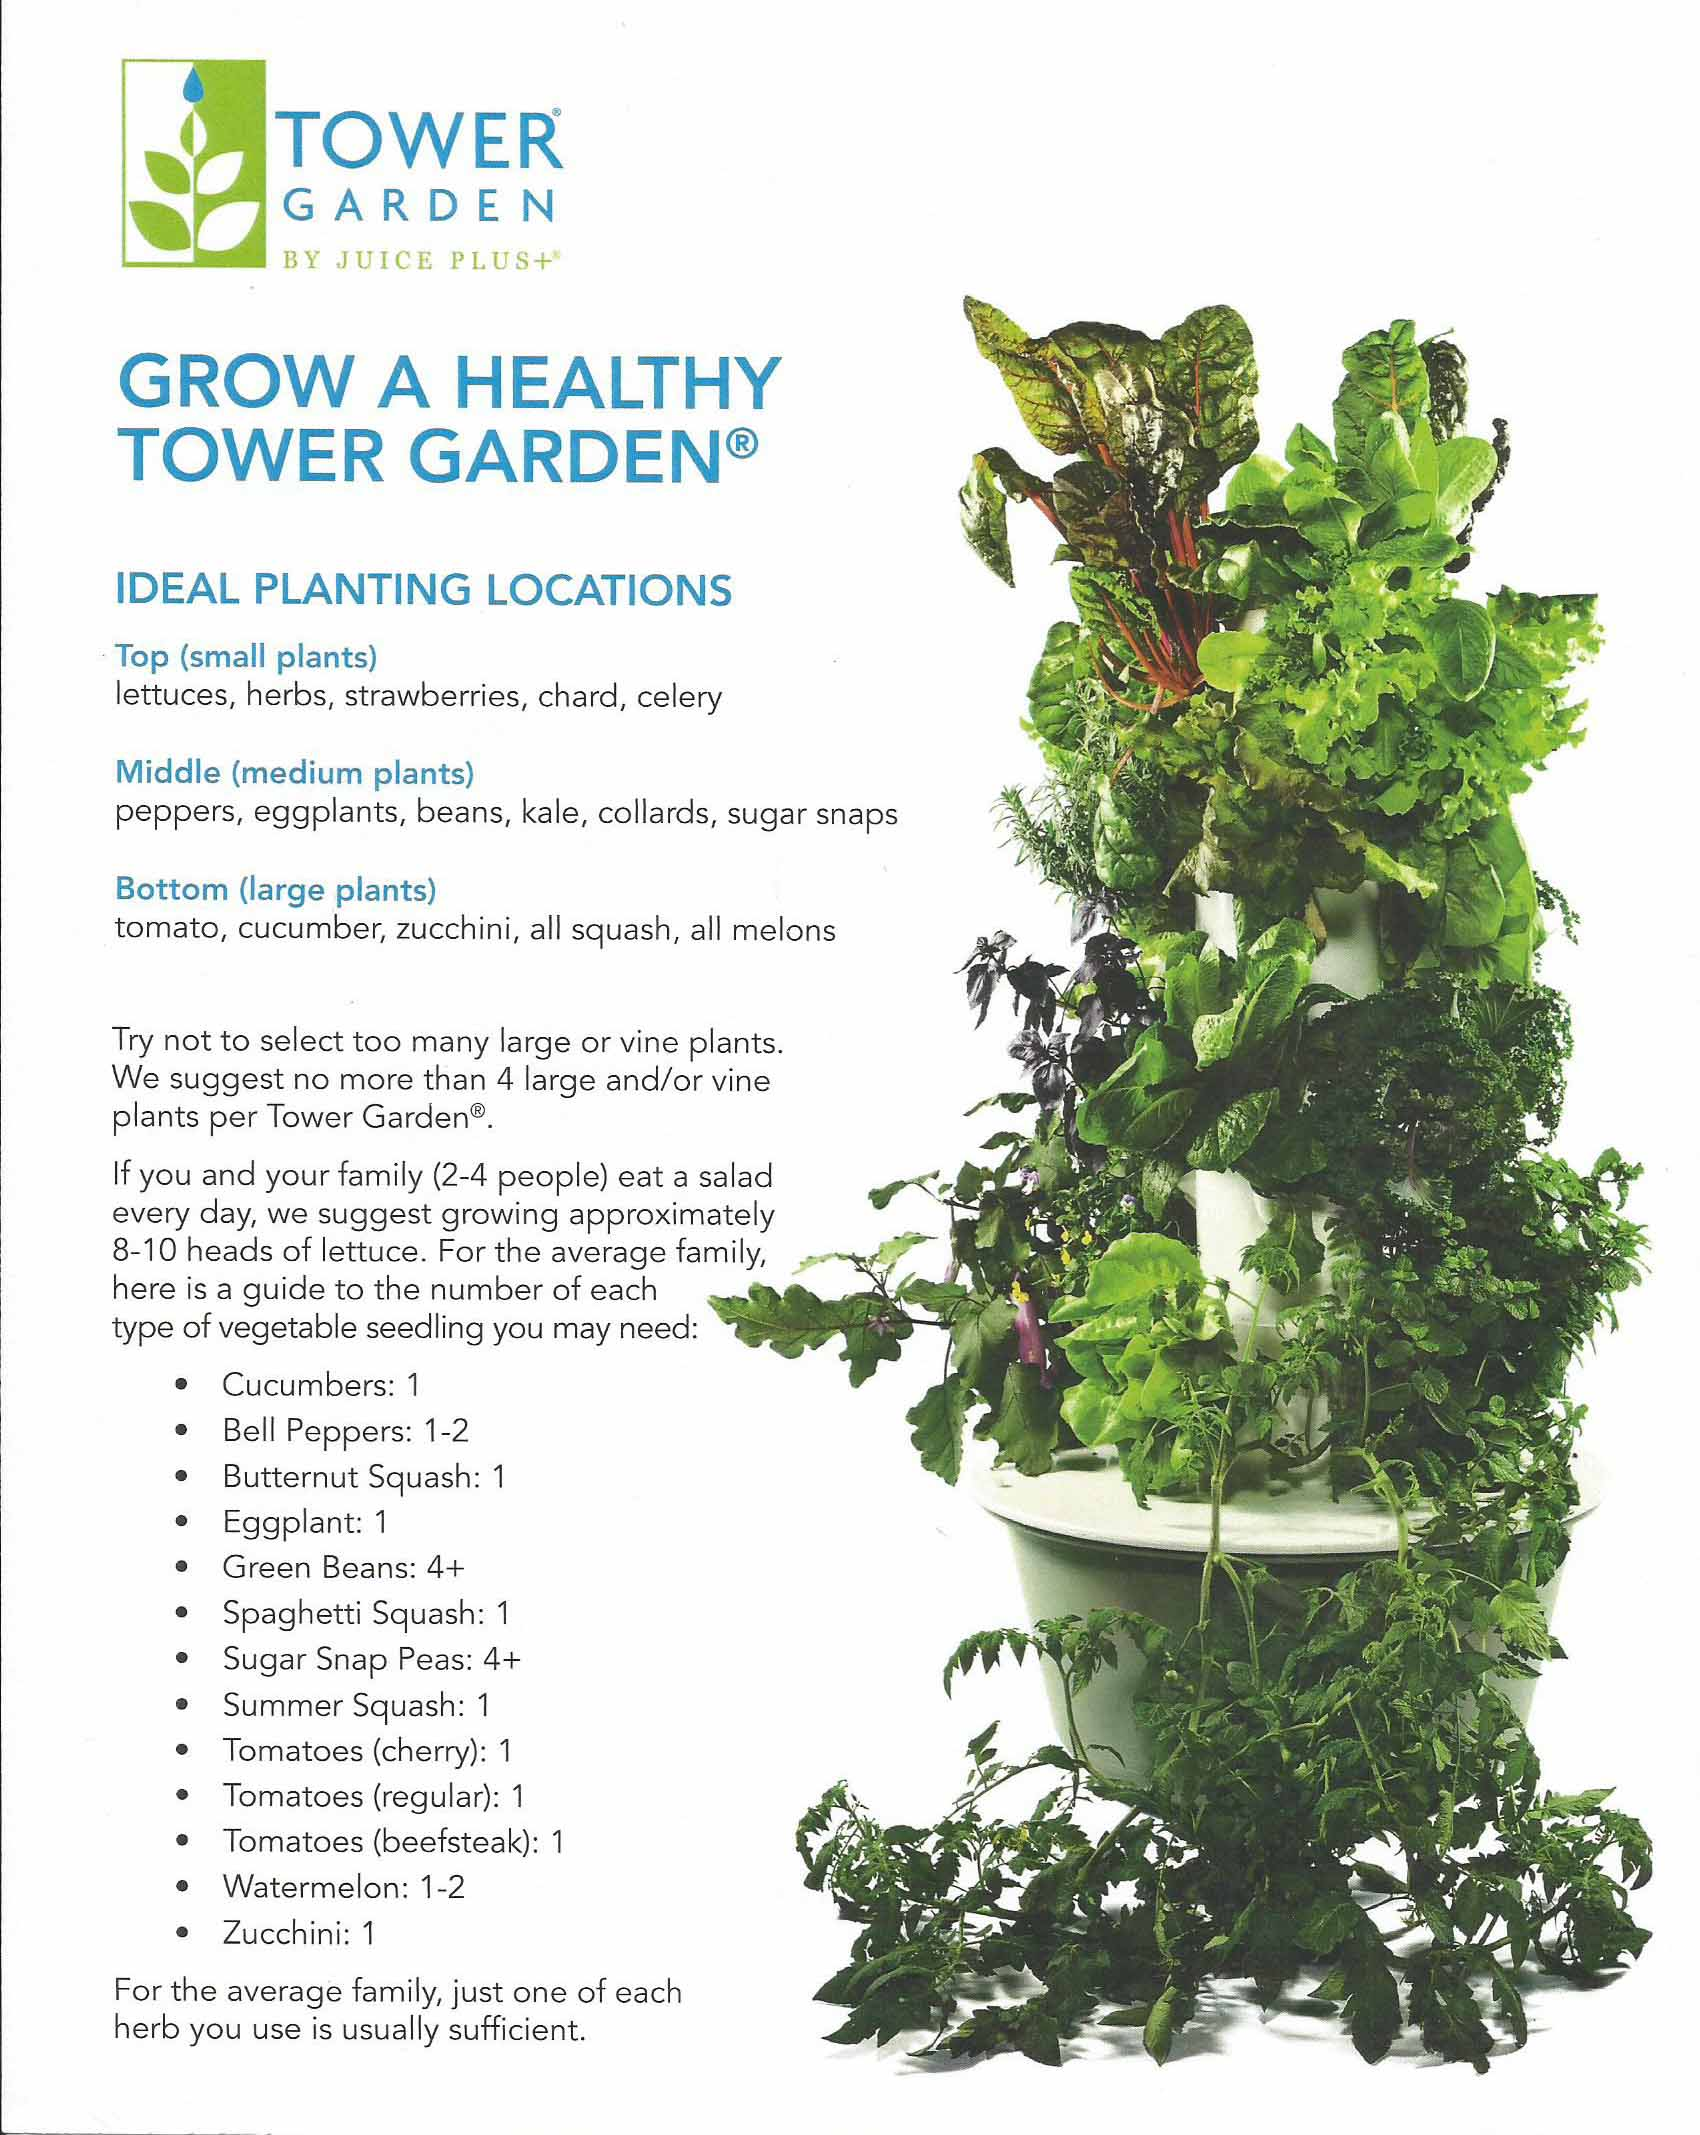 how to grow at healthy tower garden vertical urban gardening - Tower Garden